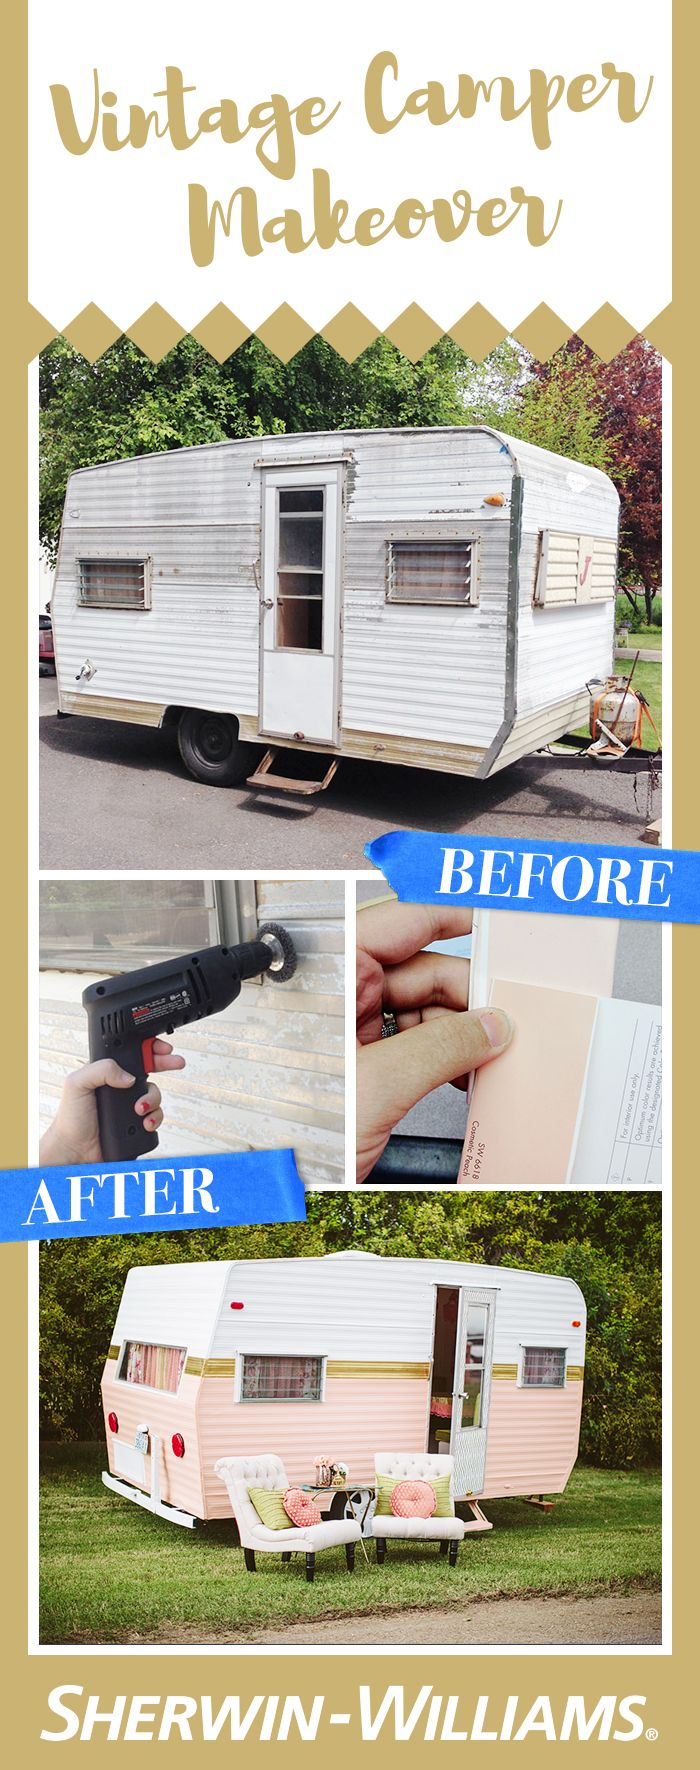 Want to go glamping in style? Or maybe you're just looking for a sweet new clubhouse? Over at @whippycake, Becki transformed a faded vintage camper into a dreamy retro glamper. With the use of Sher-Cryl HPA Semi-Gloss paint in Extra White and Cosmetic Peach by Sherwin-Williams, she was able to paint the perfect hues that will last for years of summer parties, fun shindigs and glamorous gatherings. See how to paint a vintage camper with Sher-Cryl paints.